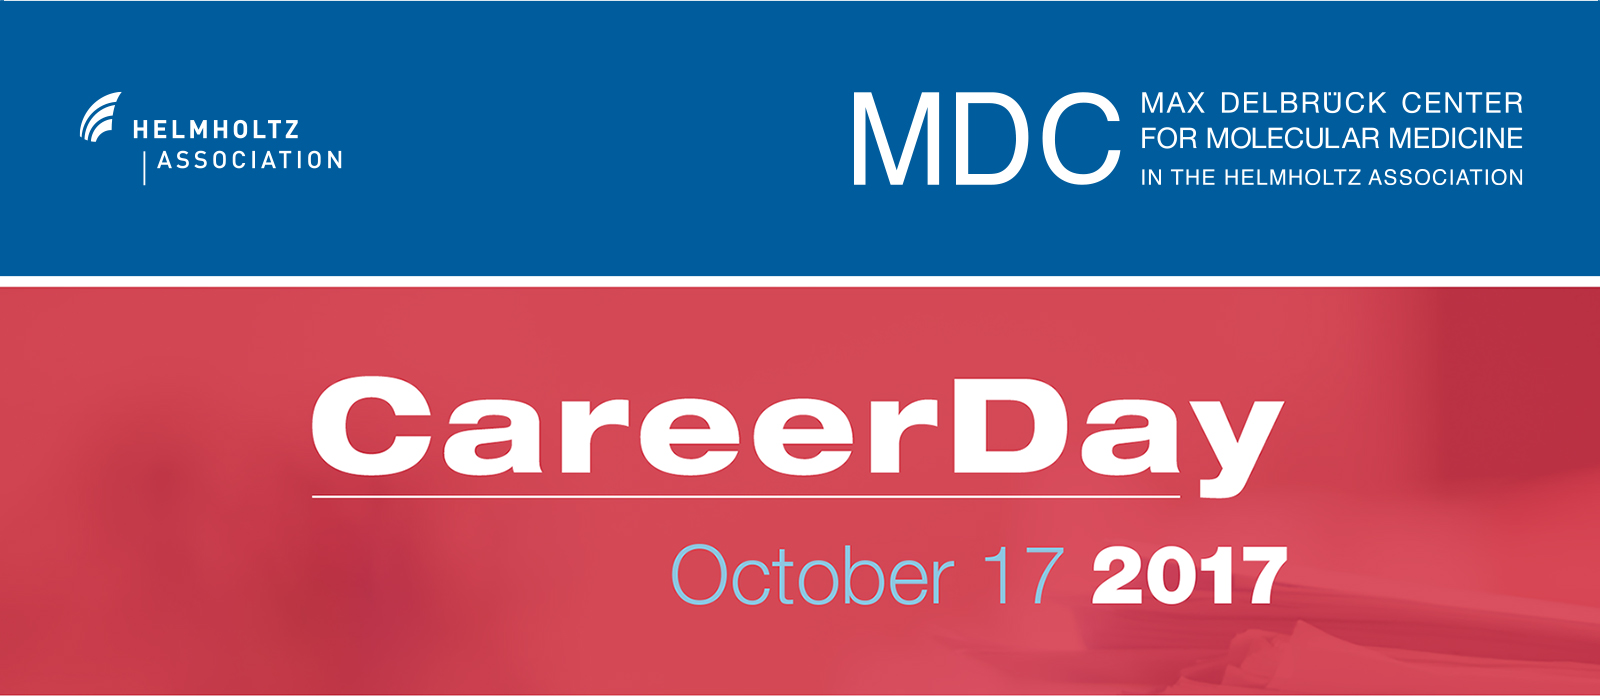 Careerday Header 2017